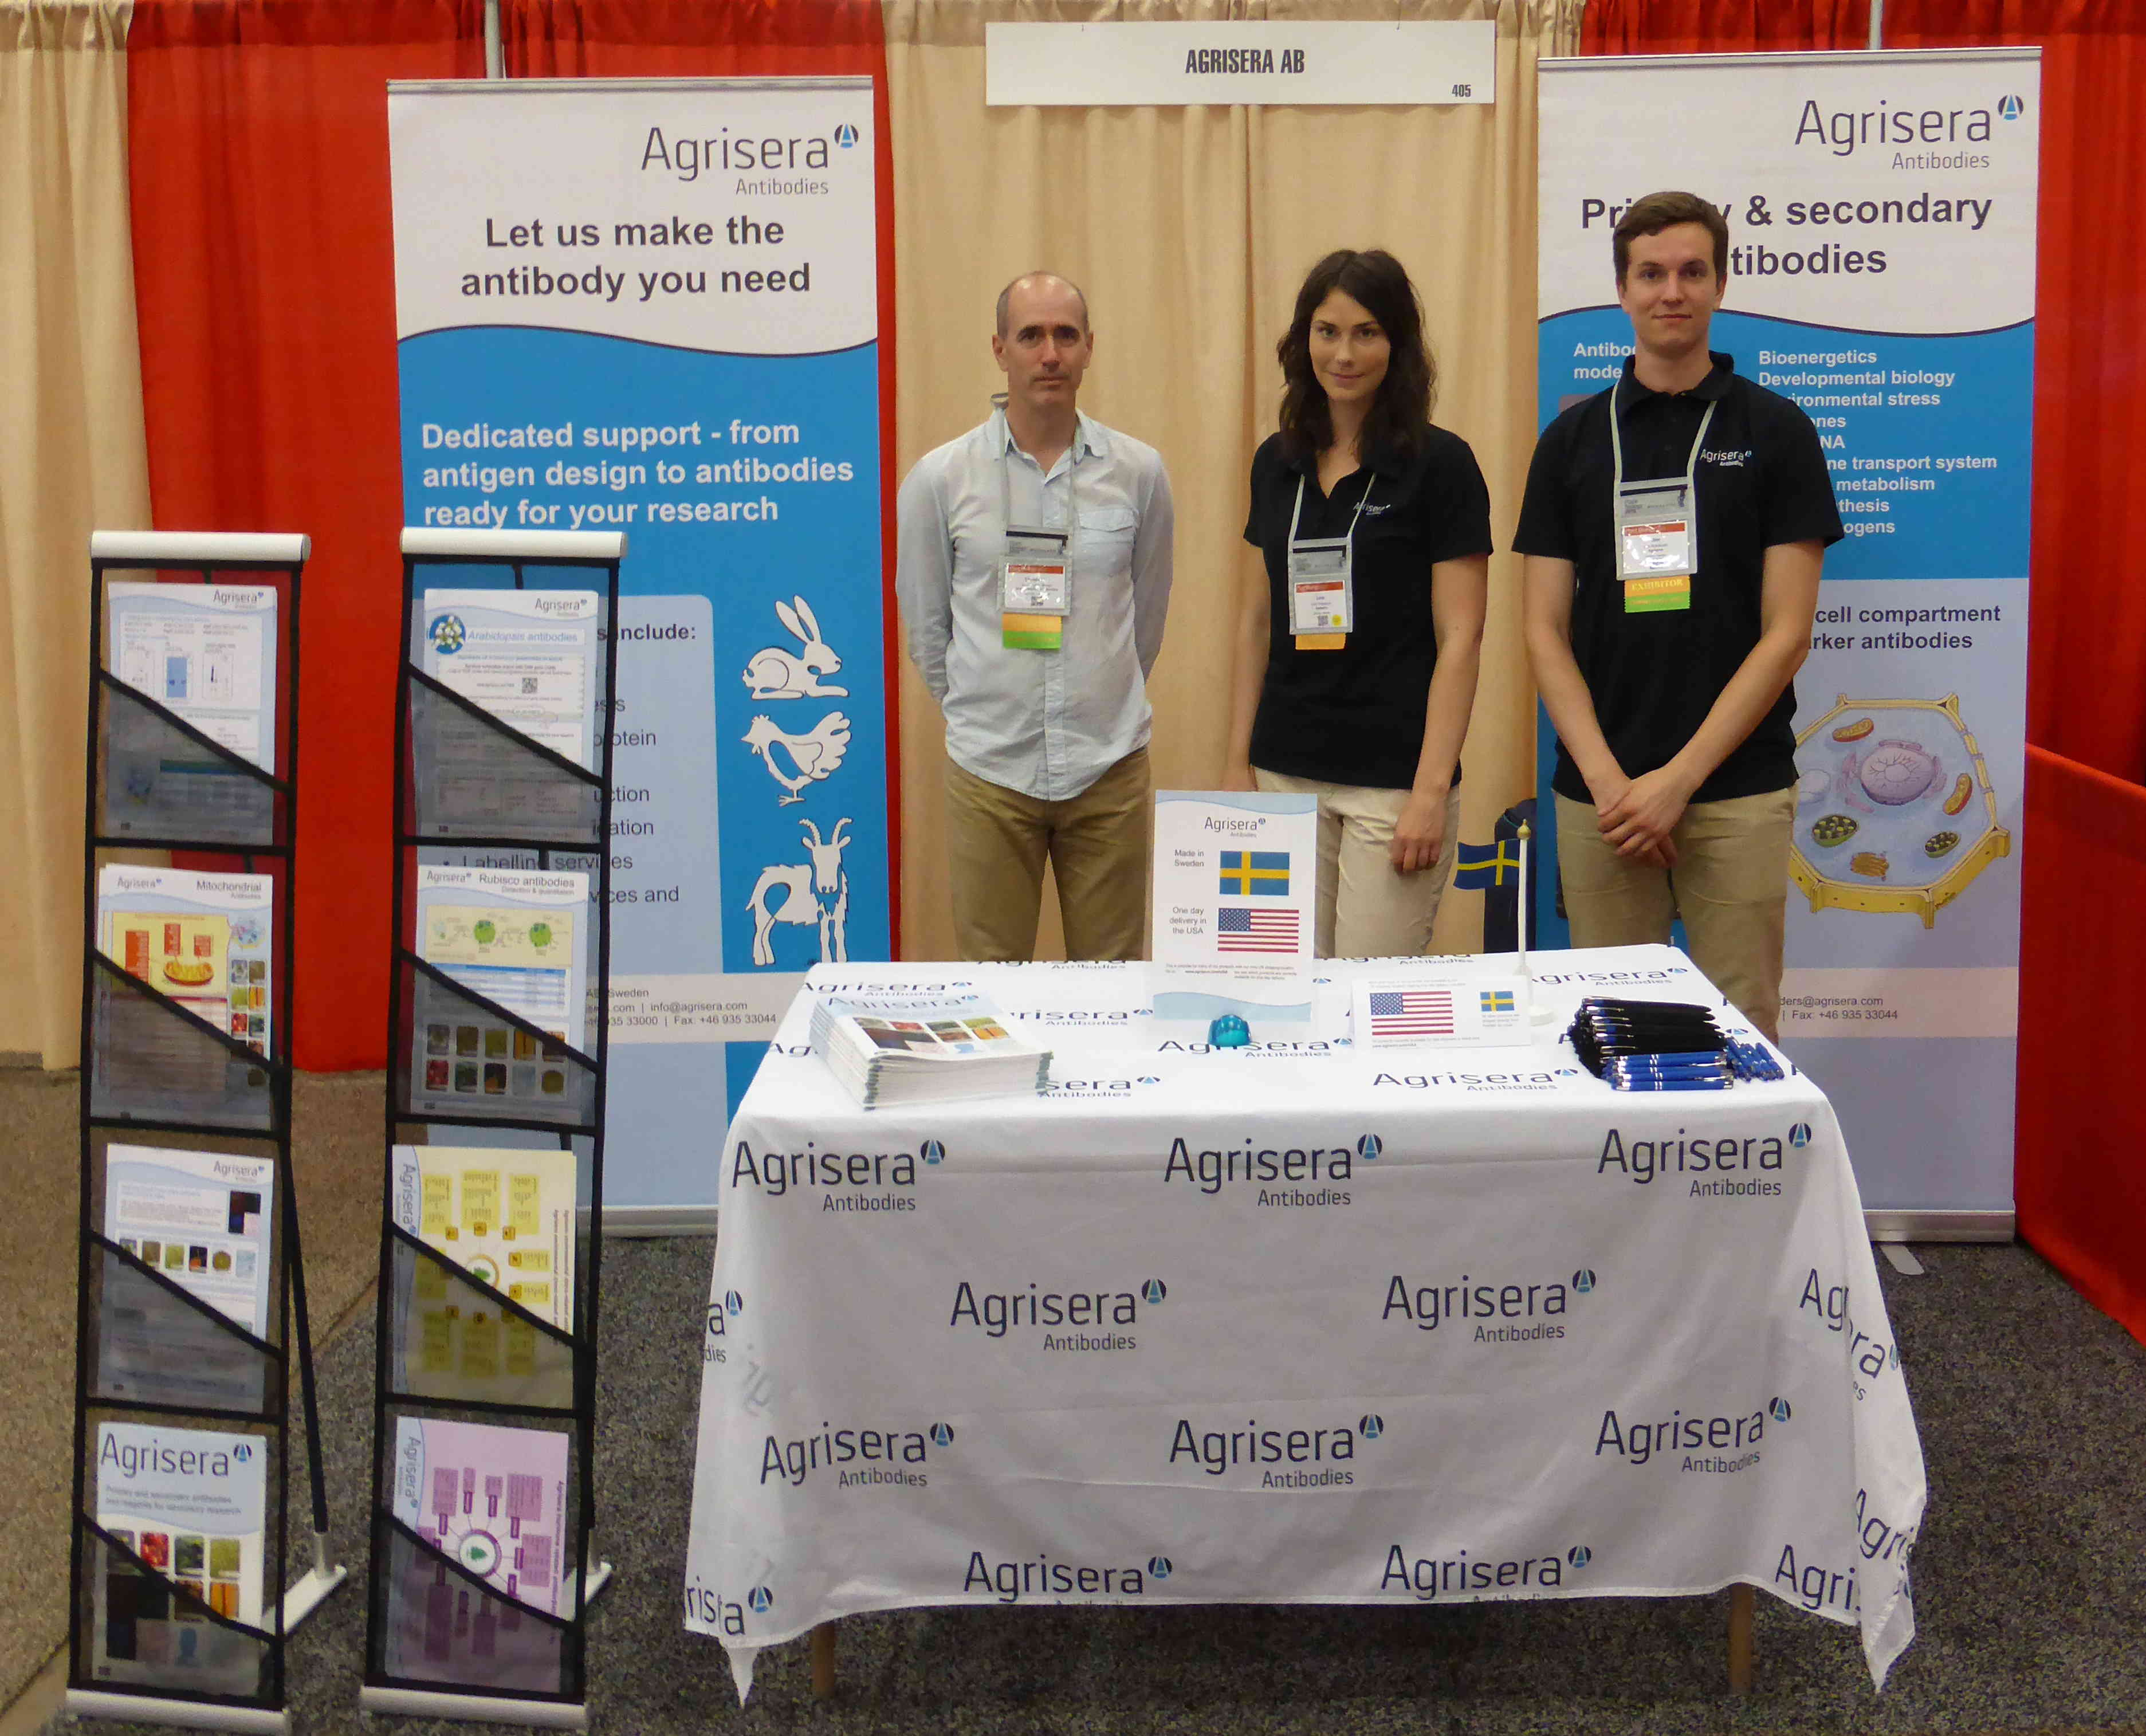 Agrisera at ASPB plant science meeting 2016